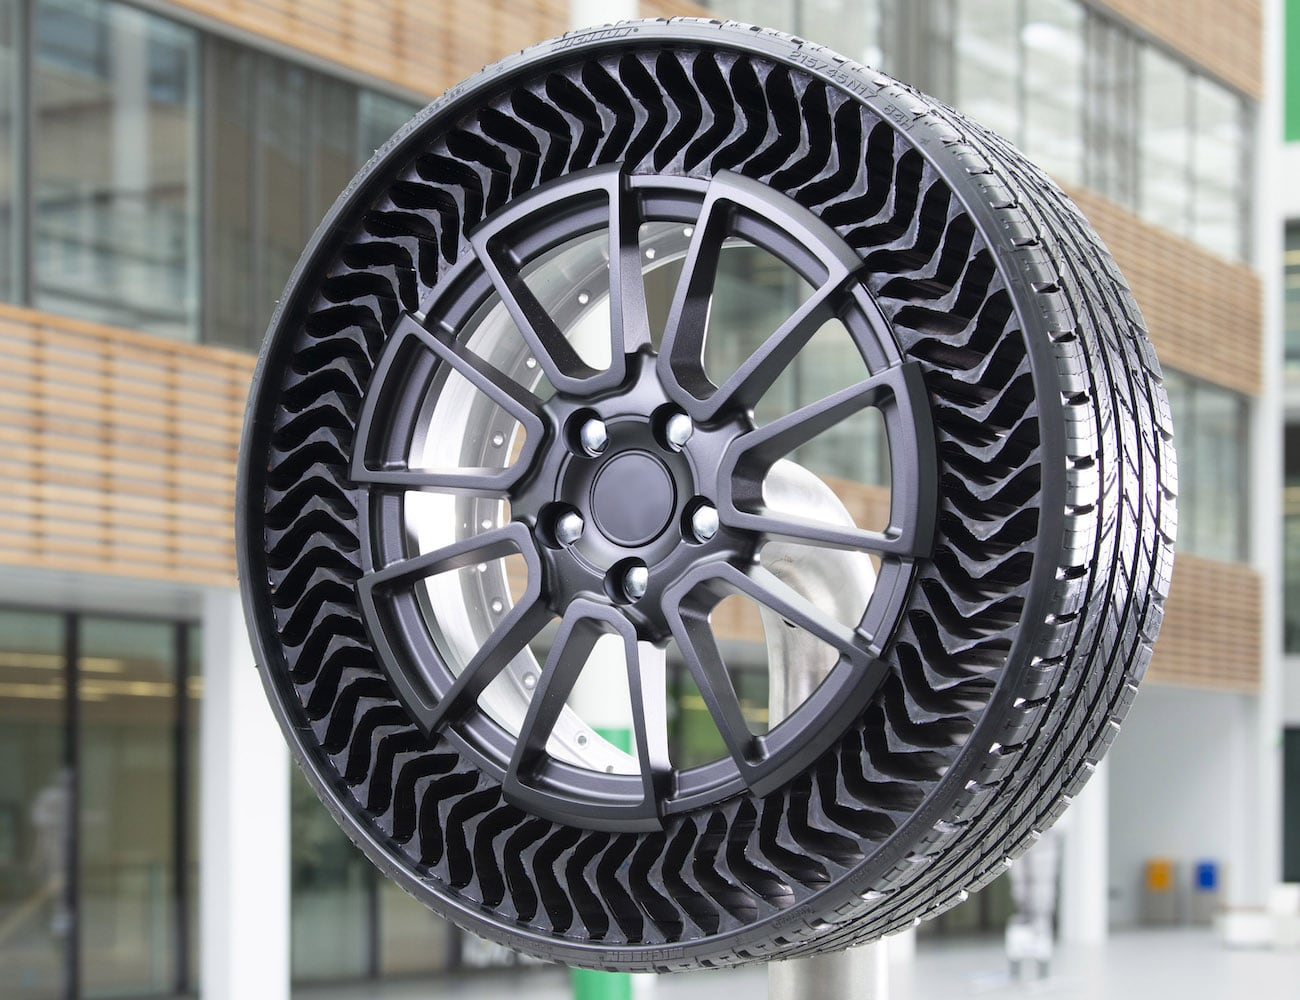 You Can Never Go Flat With Michelin Uptis Airless Smart Tire